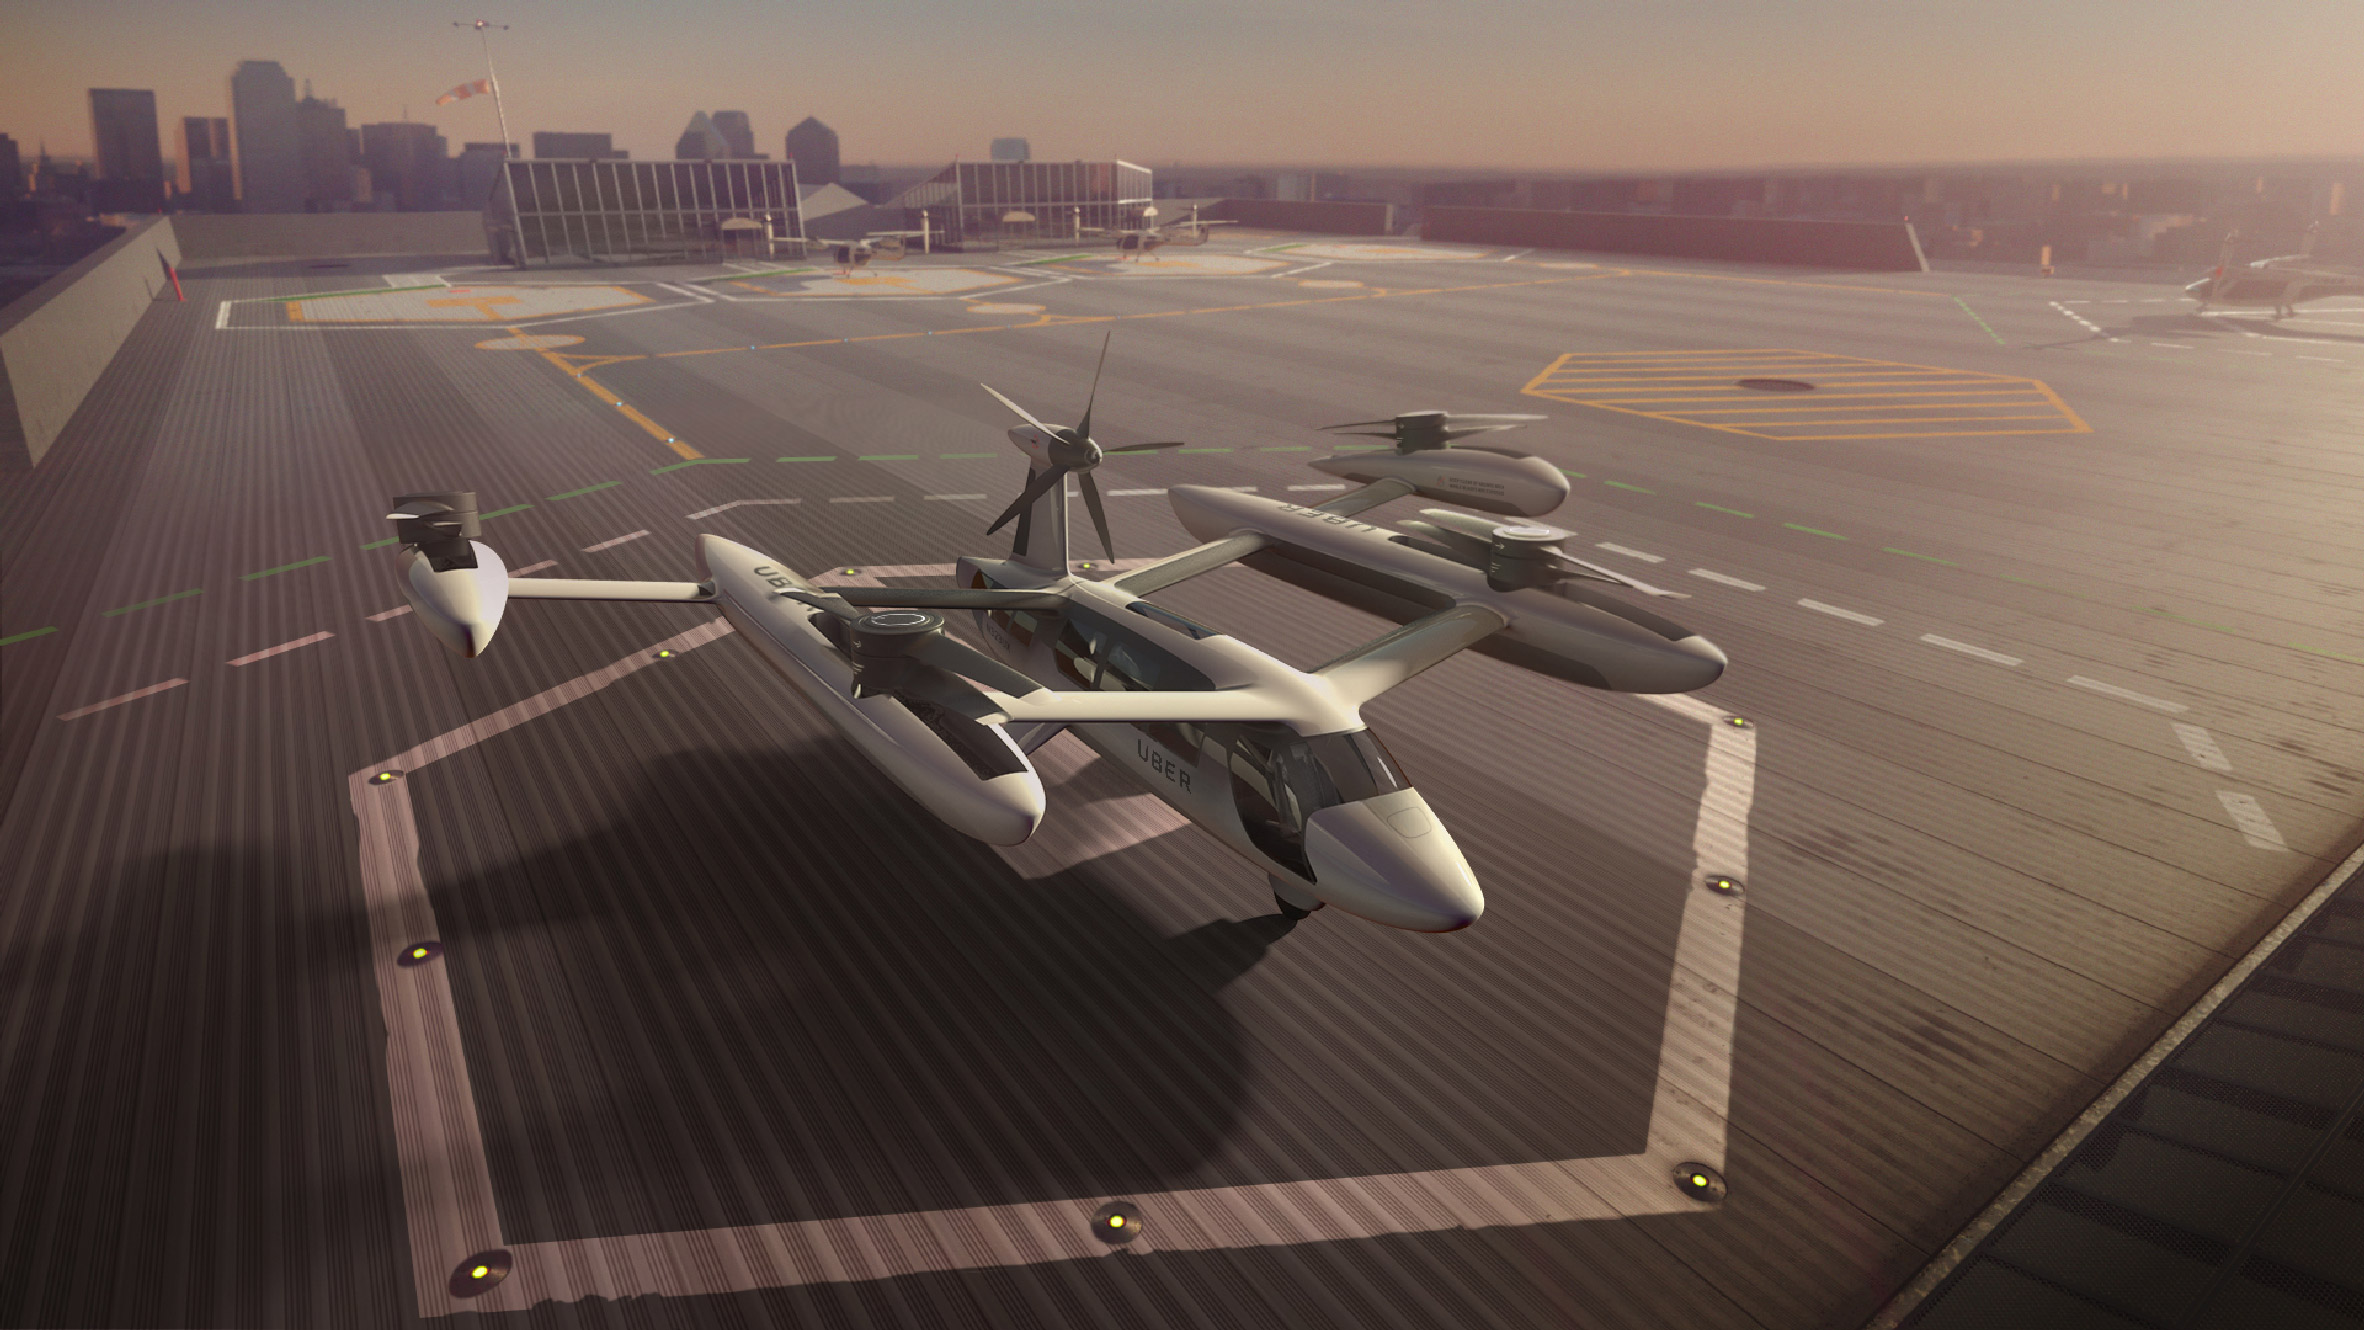 Uber unveils drone-like